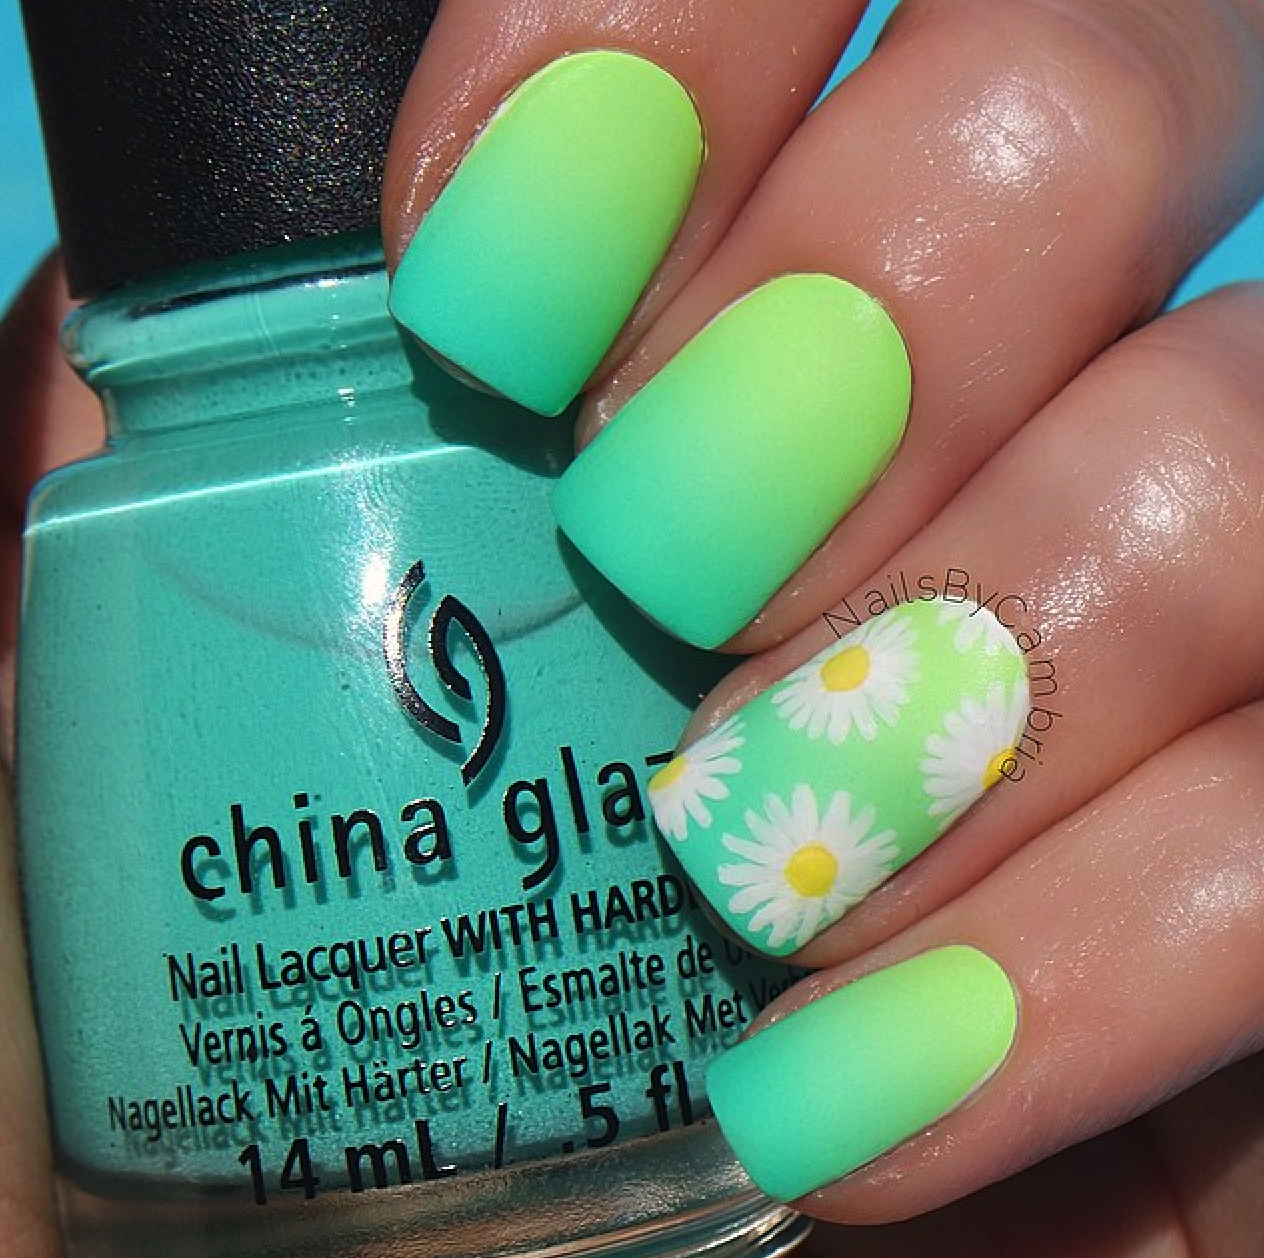 Ombre daisy nails | Nails nails nails | Pinterest | Daisy nails ...